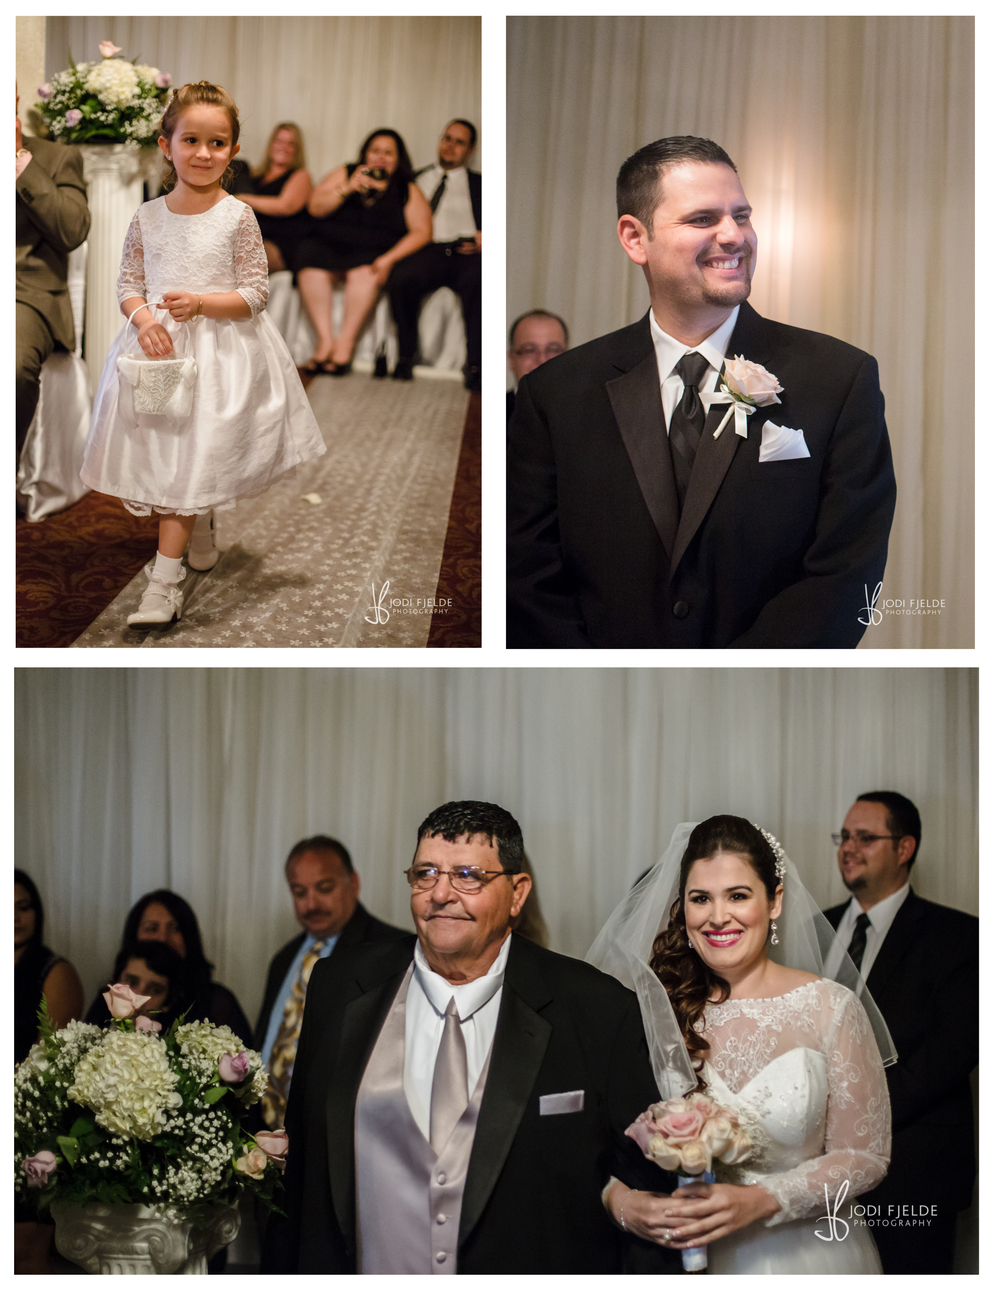 Ballroom Wedding_Ft Lauderdale_Florida_wedding_Maria_&_Juan_photography_jodi_Fjelde_photography-8.jpg